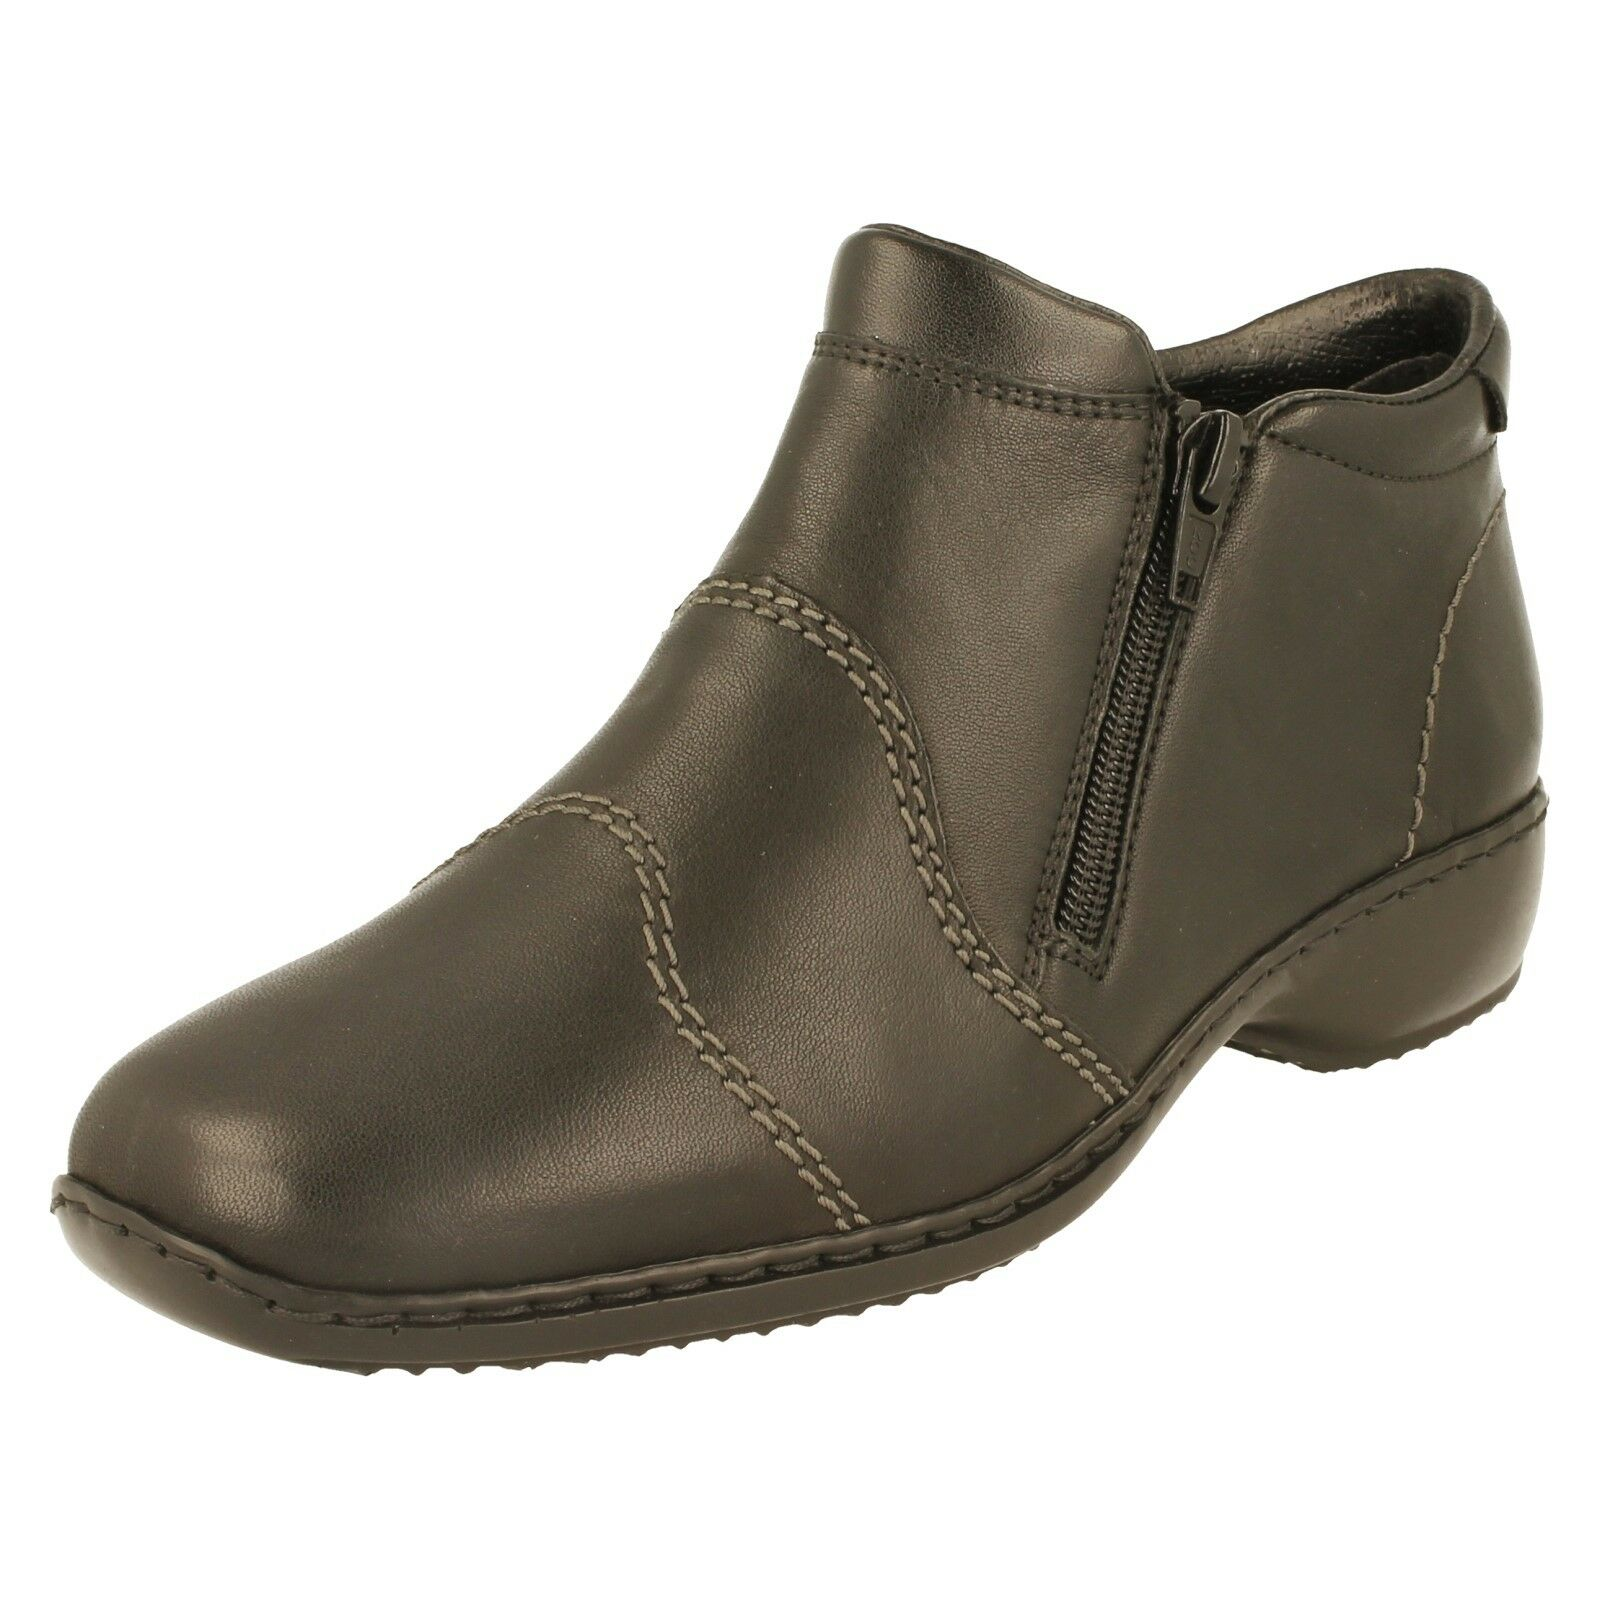 Ladies Rieker Warm Lined Ankle Boots - L3892